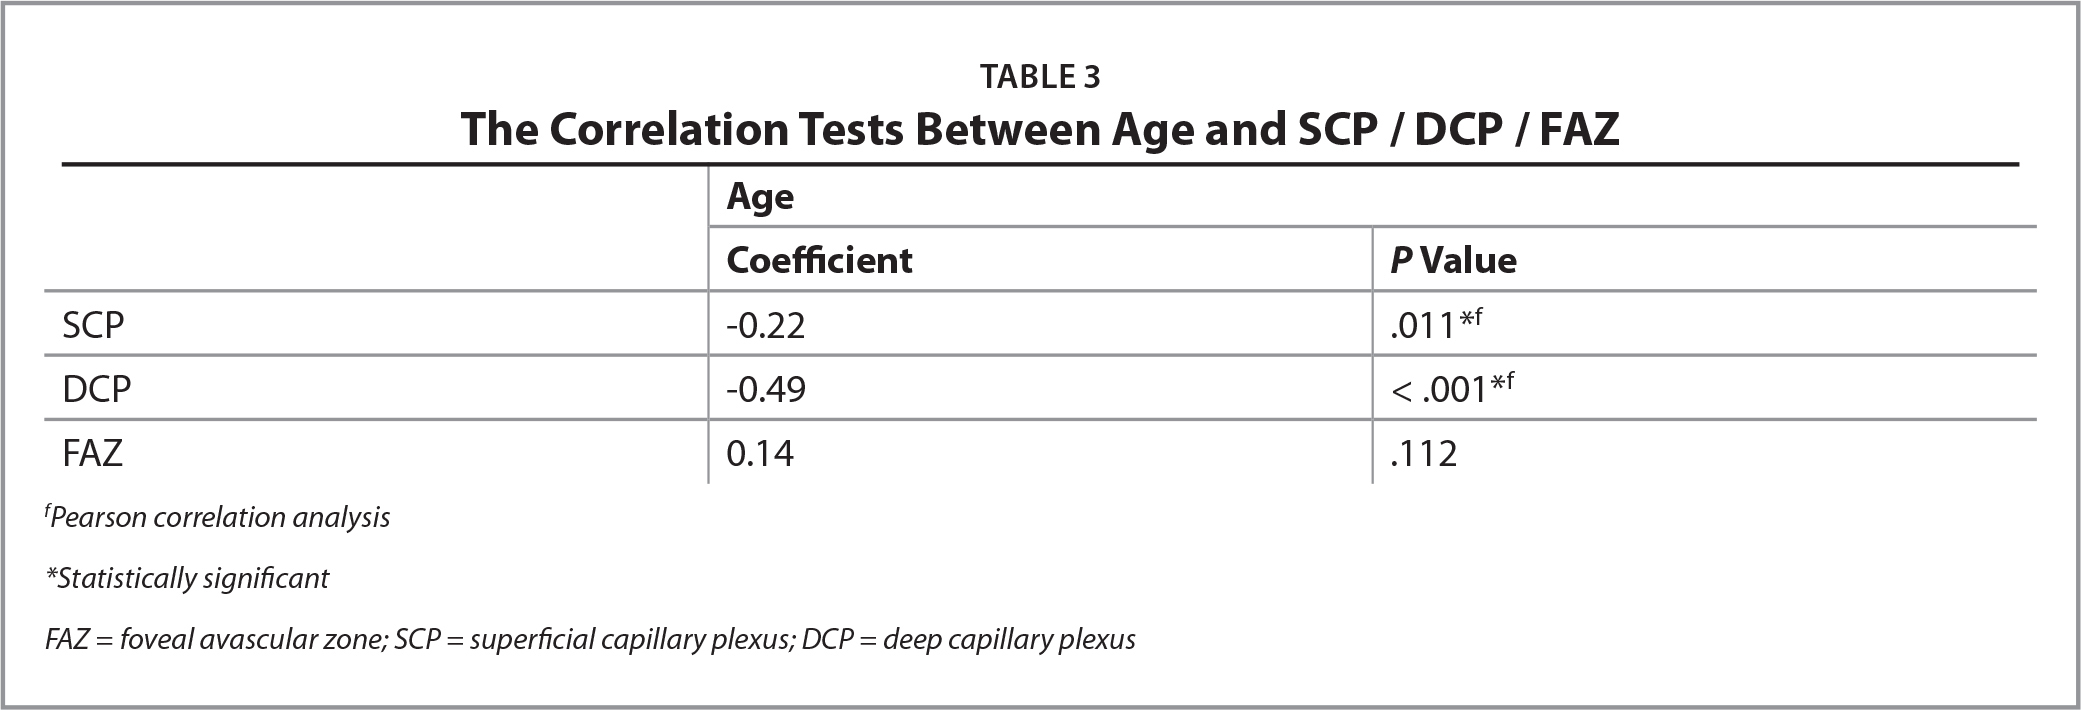 The Correlation Tests Between Age and SCP / DCP / FAZ